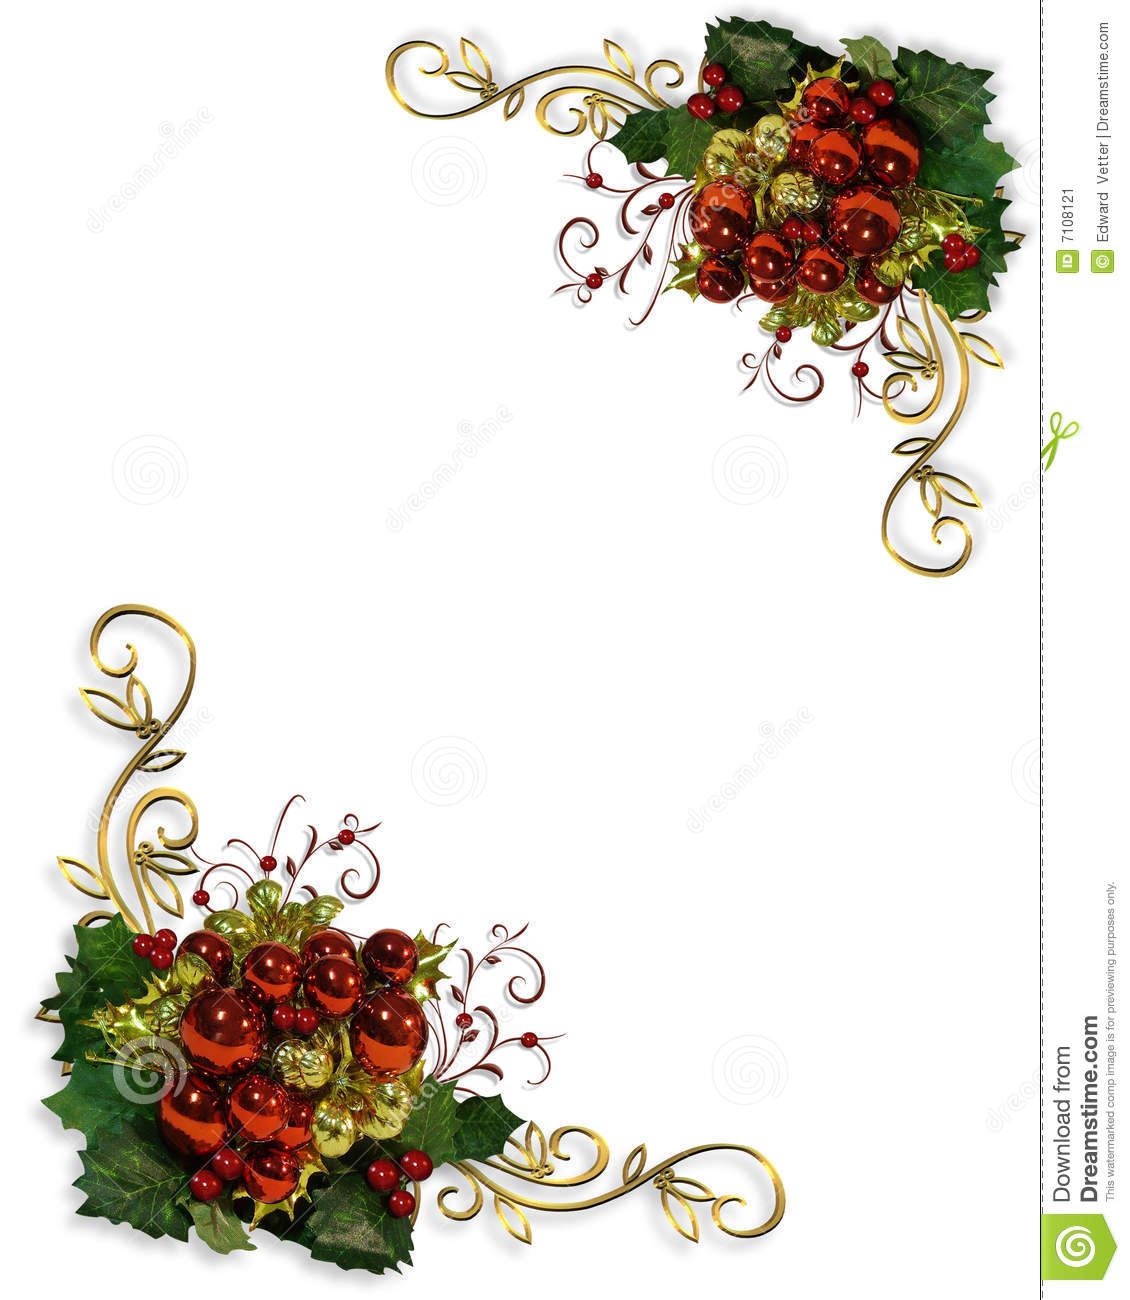 christmas corner design elements stock illustration illustration